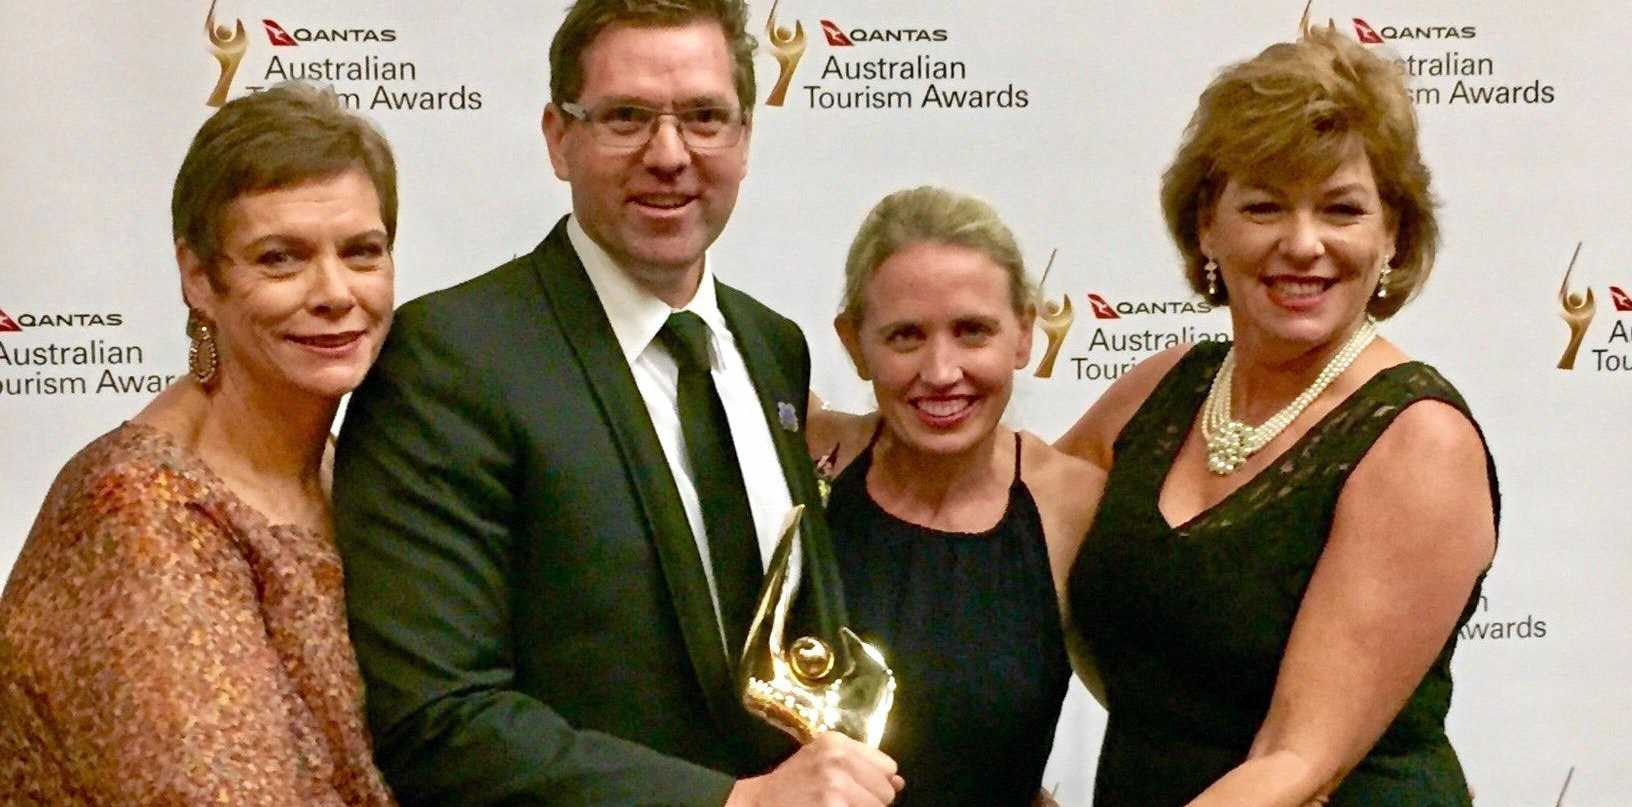 TOP AWARD: Celebrating the Gold Australian Tourism win are Mary-Clare Power, Cr Geoff McDonald, Qld Tourism Minister Kate Jones and Dr Jane Summers.